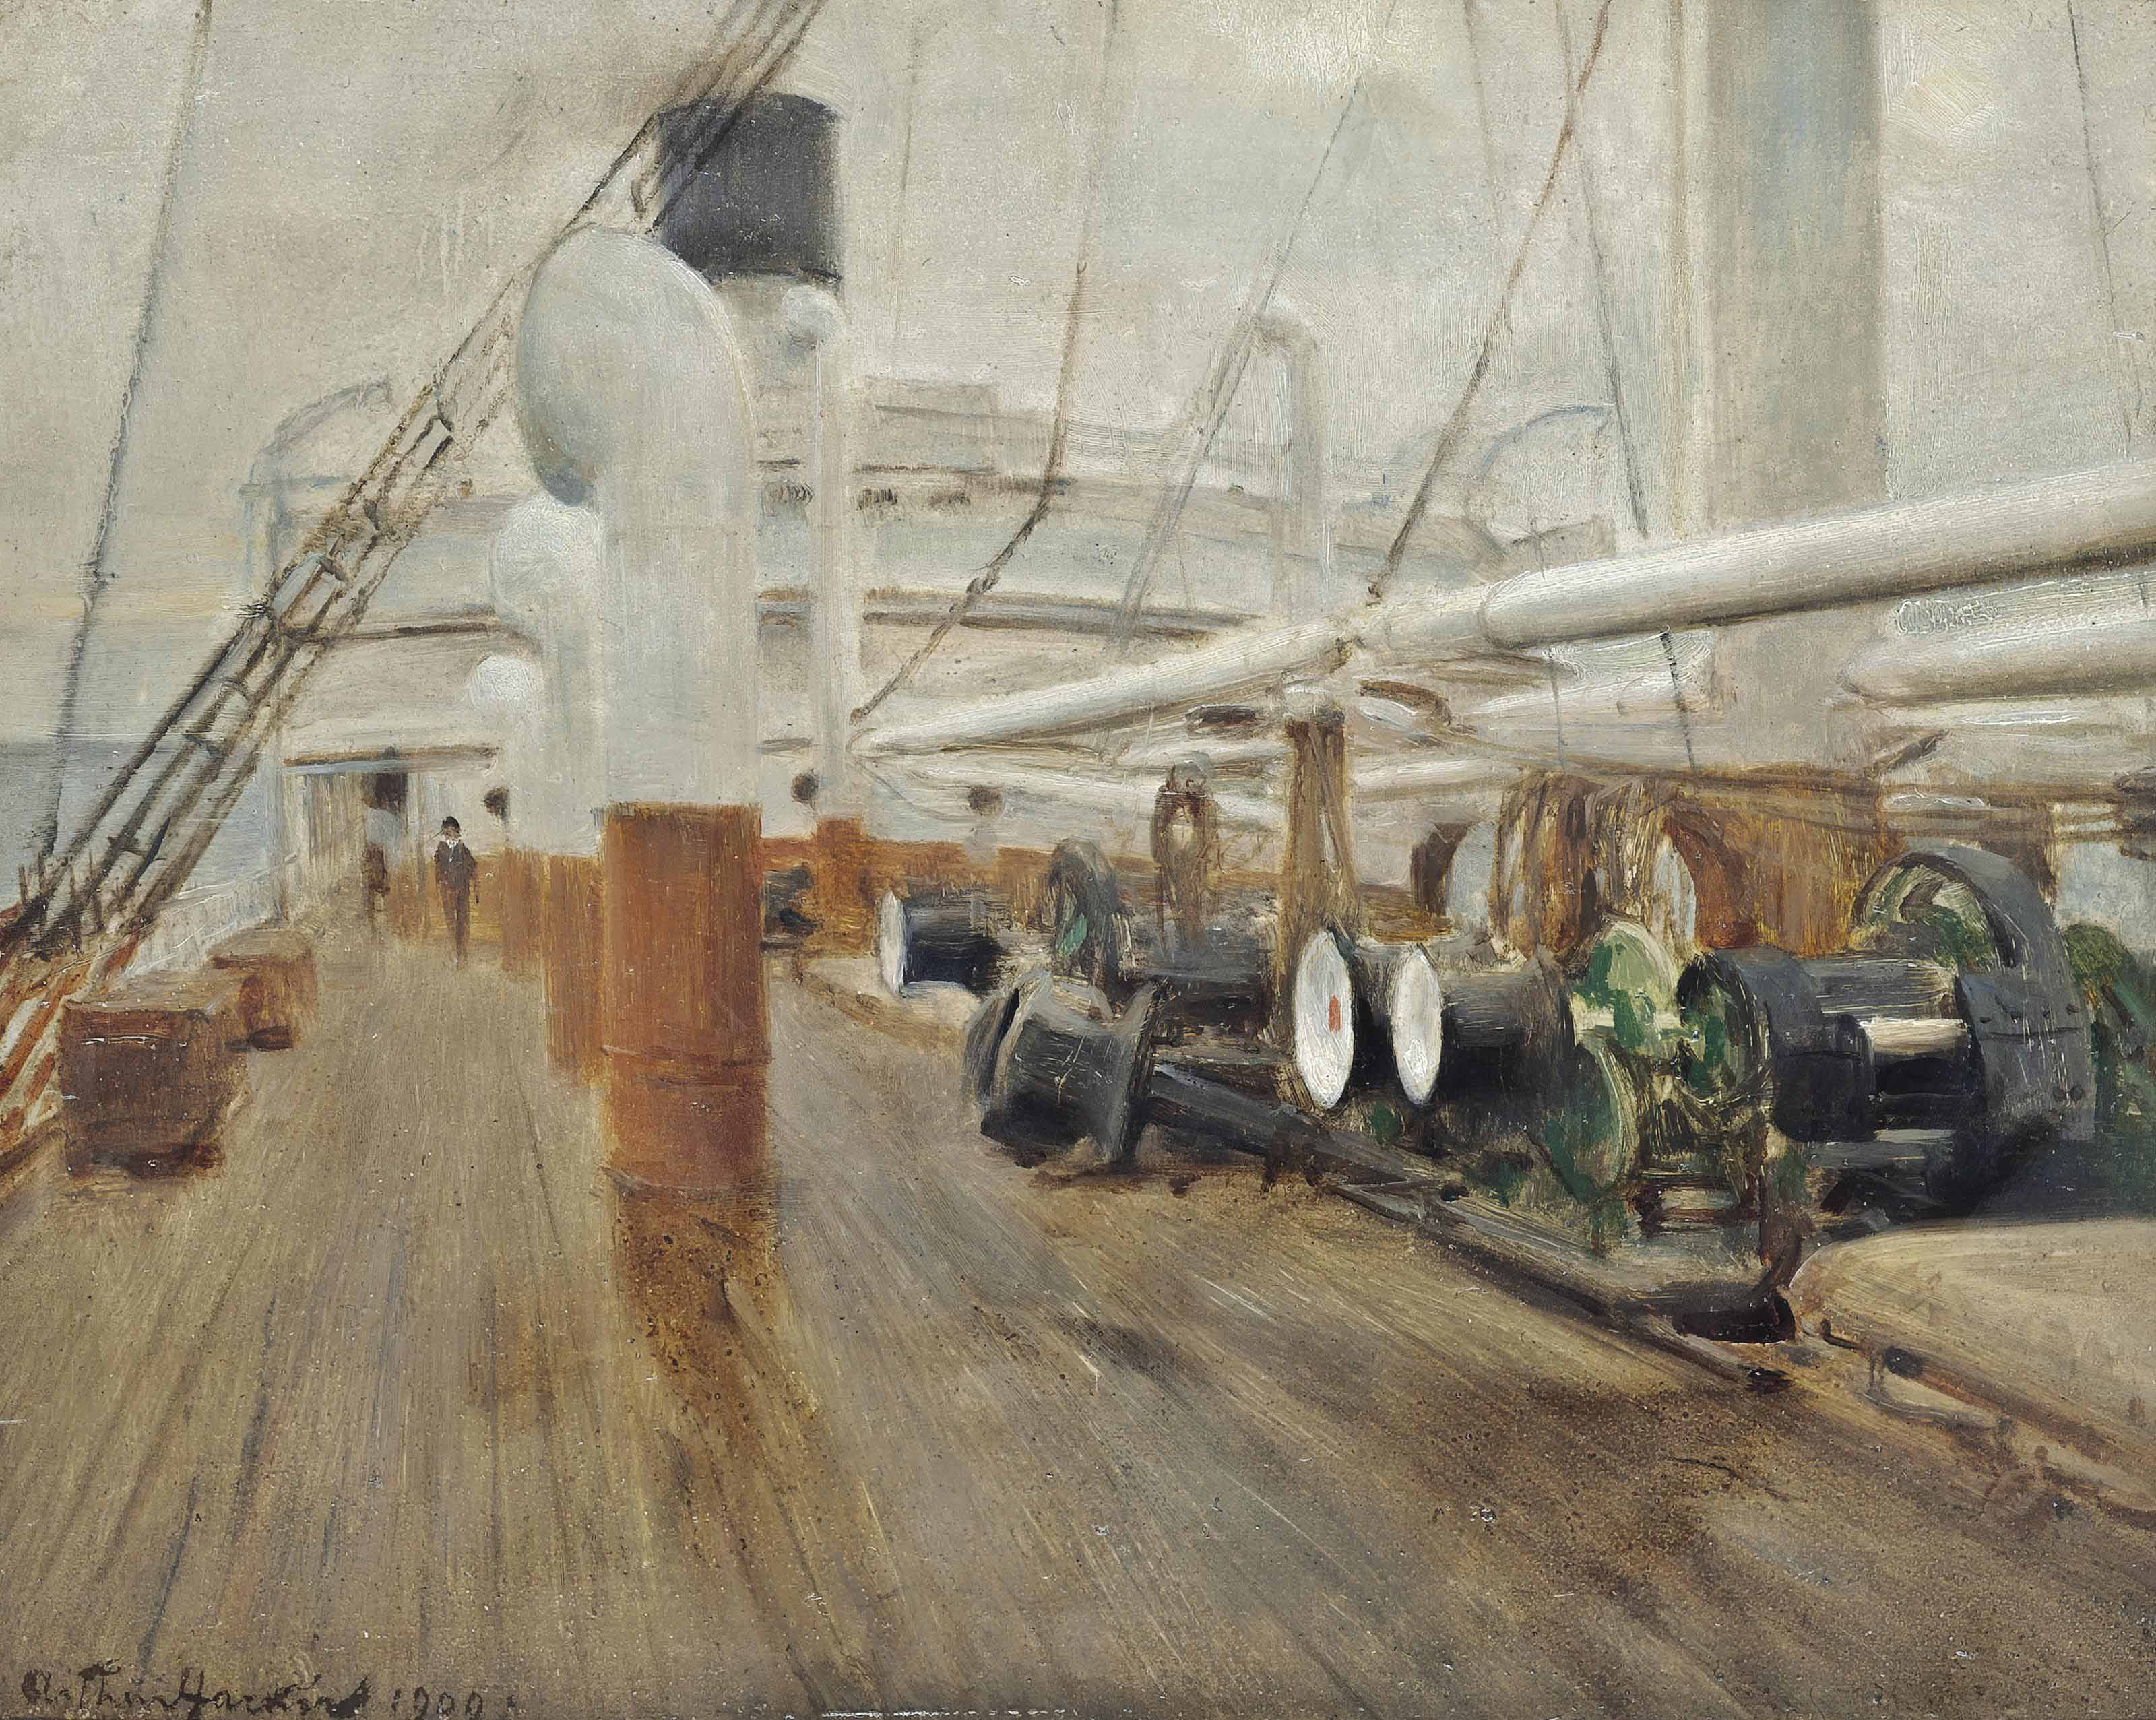 The deck of the S.S. Veronese